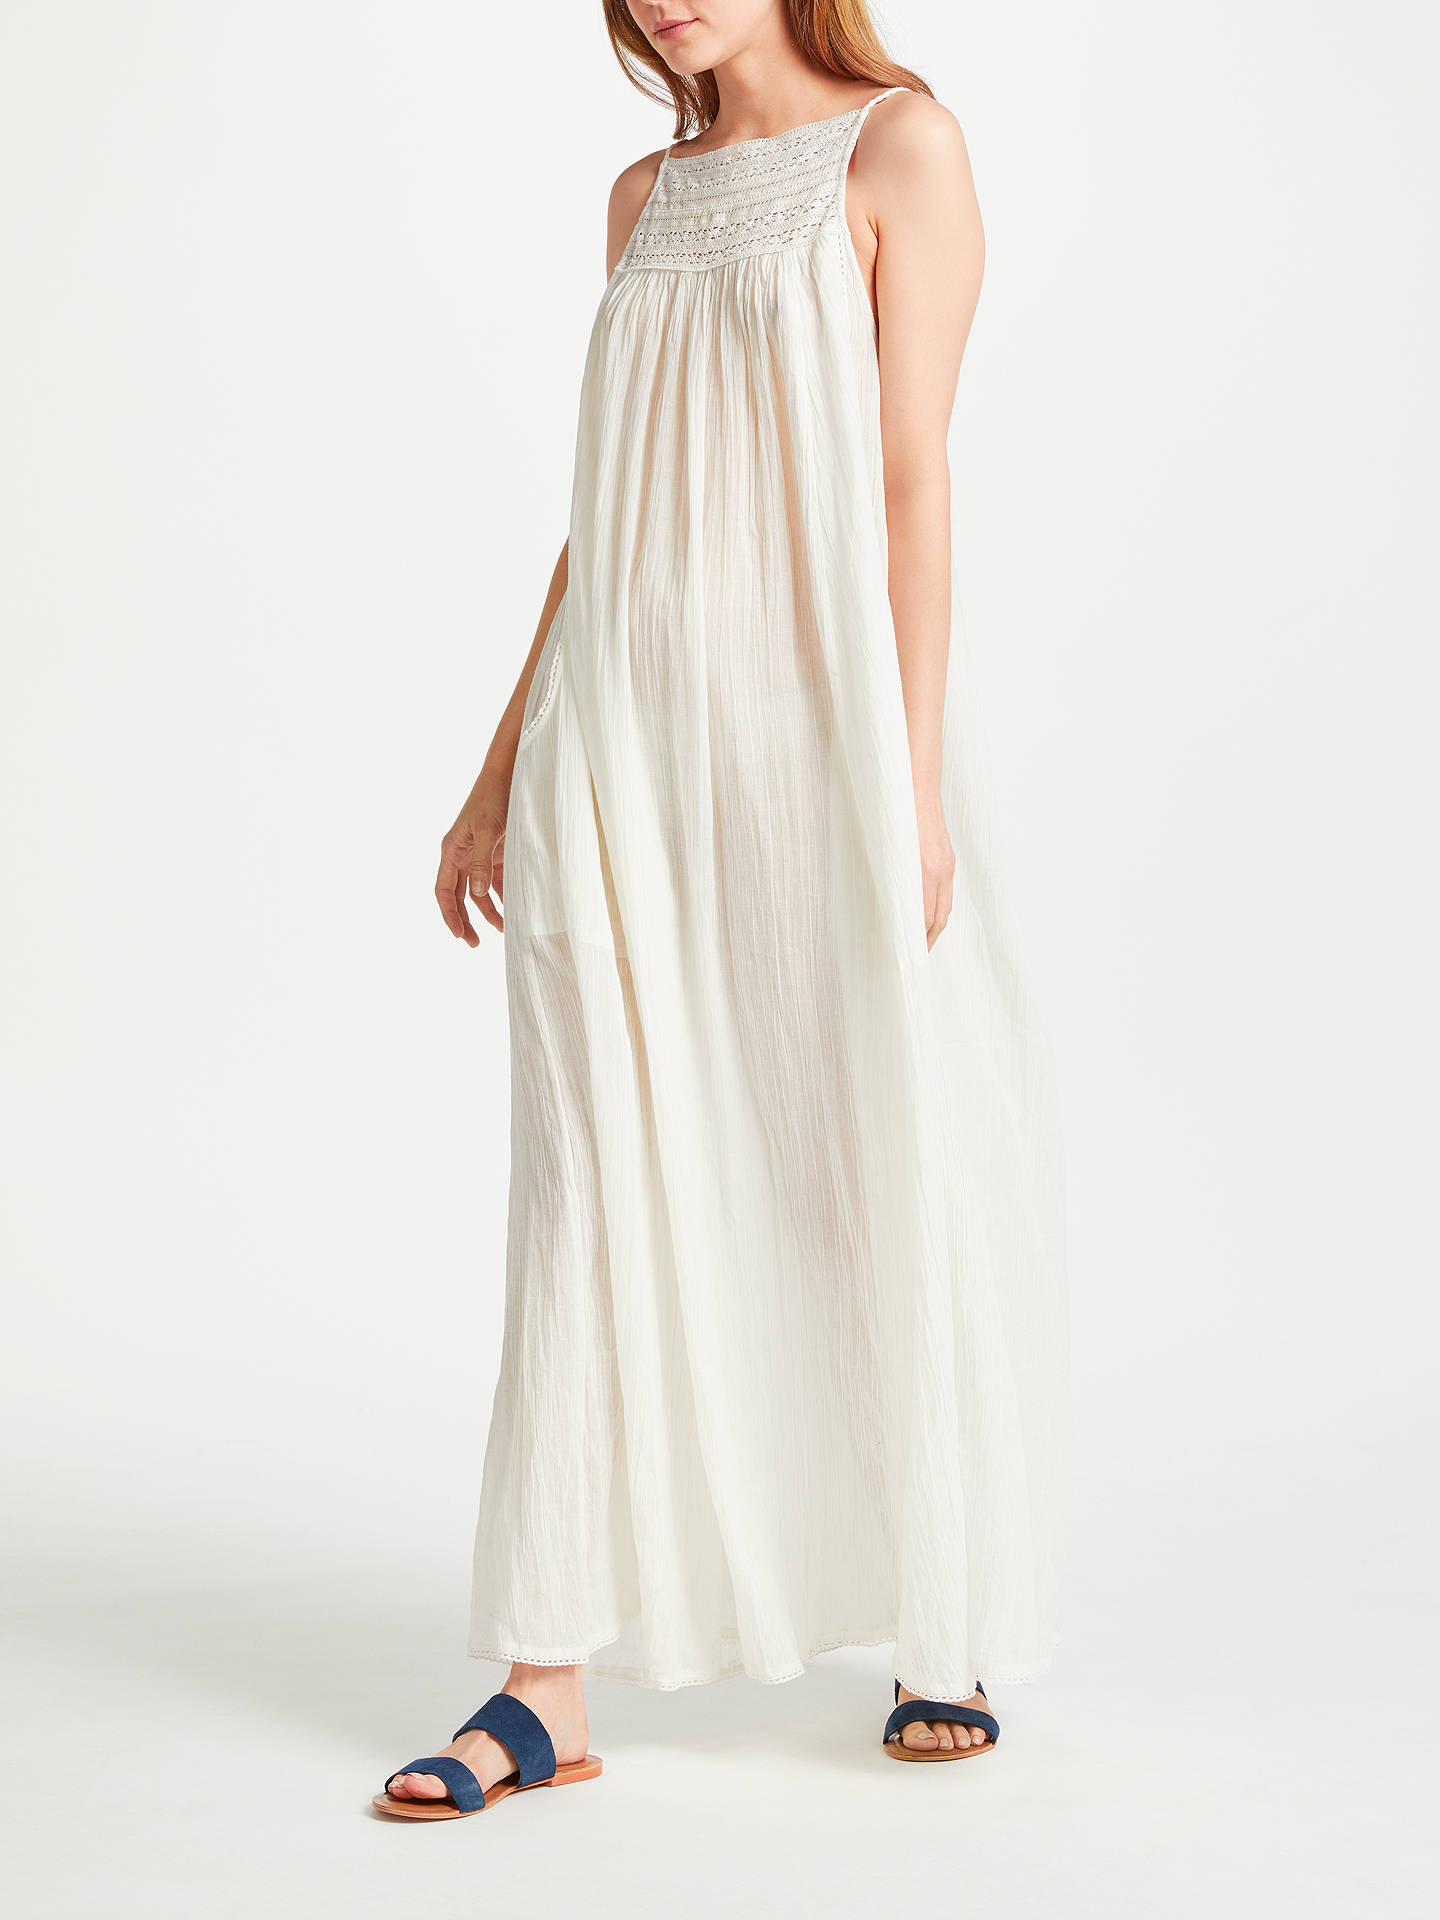 BuyStar Mela Carly Maxi Dress, White, S Online at johnlewis.com